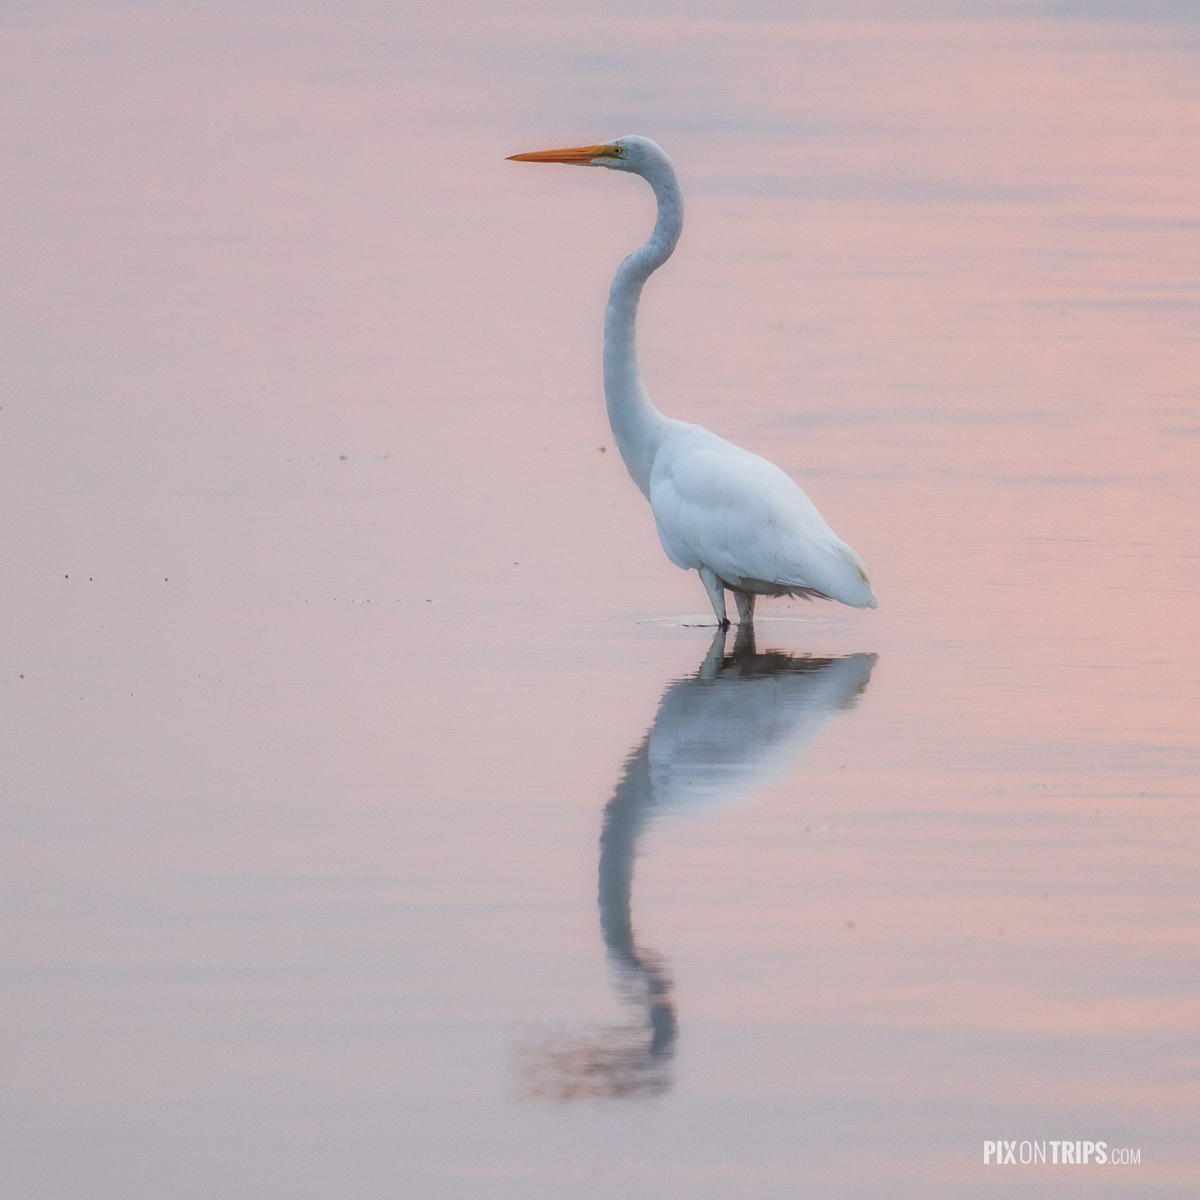 Great egret standing in water with pink reflections at dawn, Ottawa, Canada - Pix on Trips